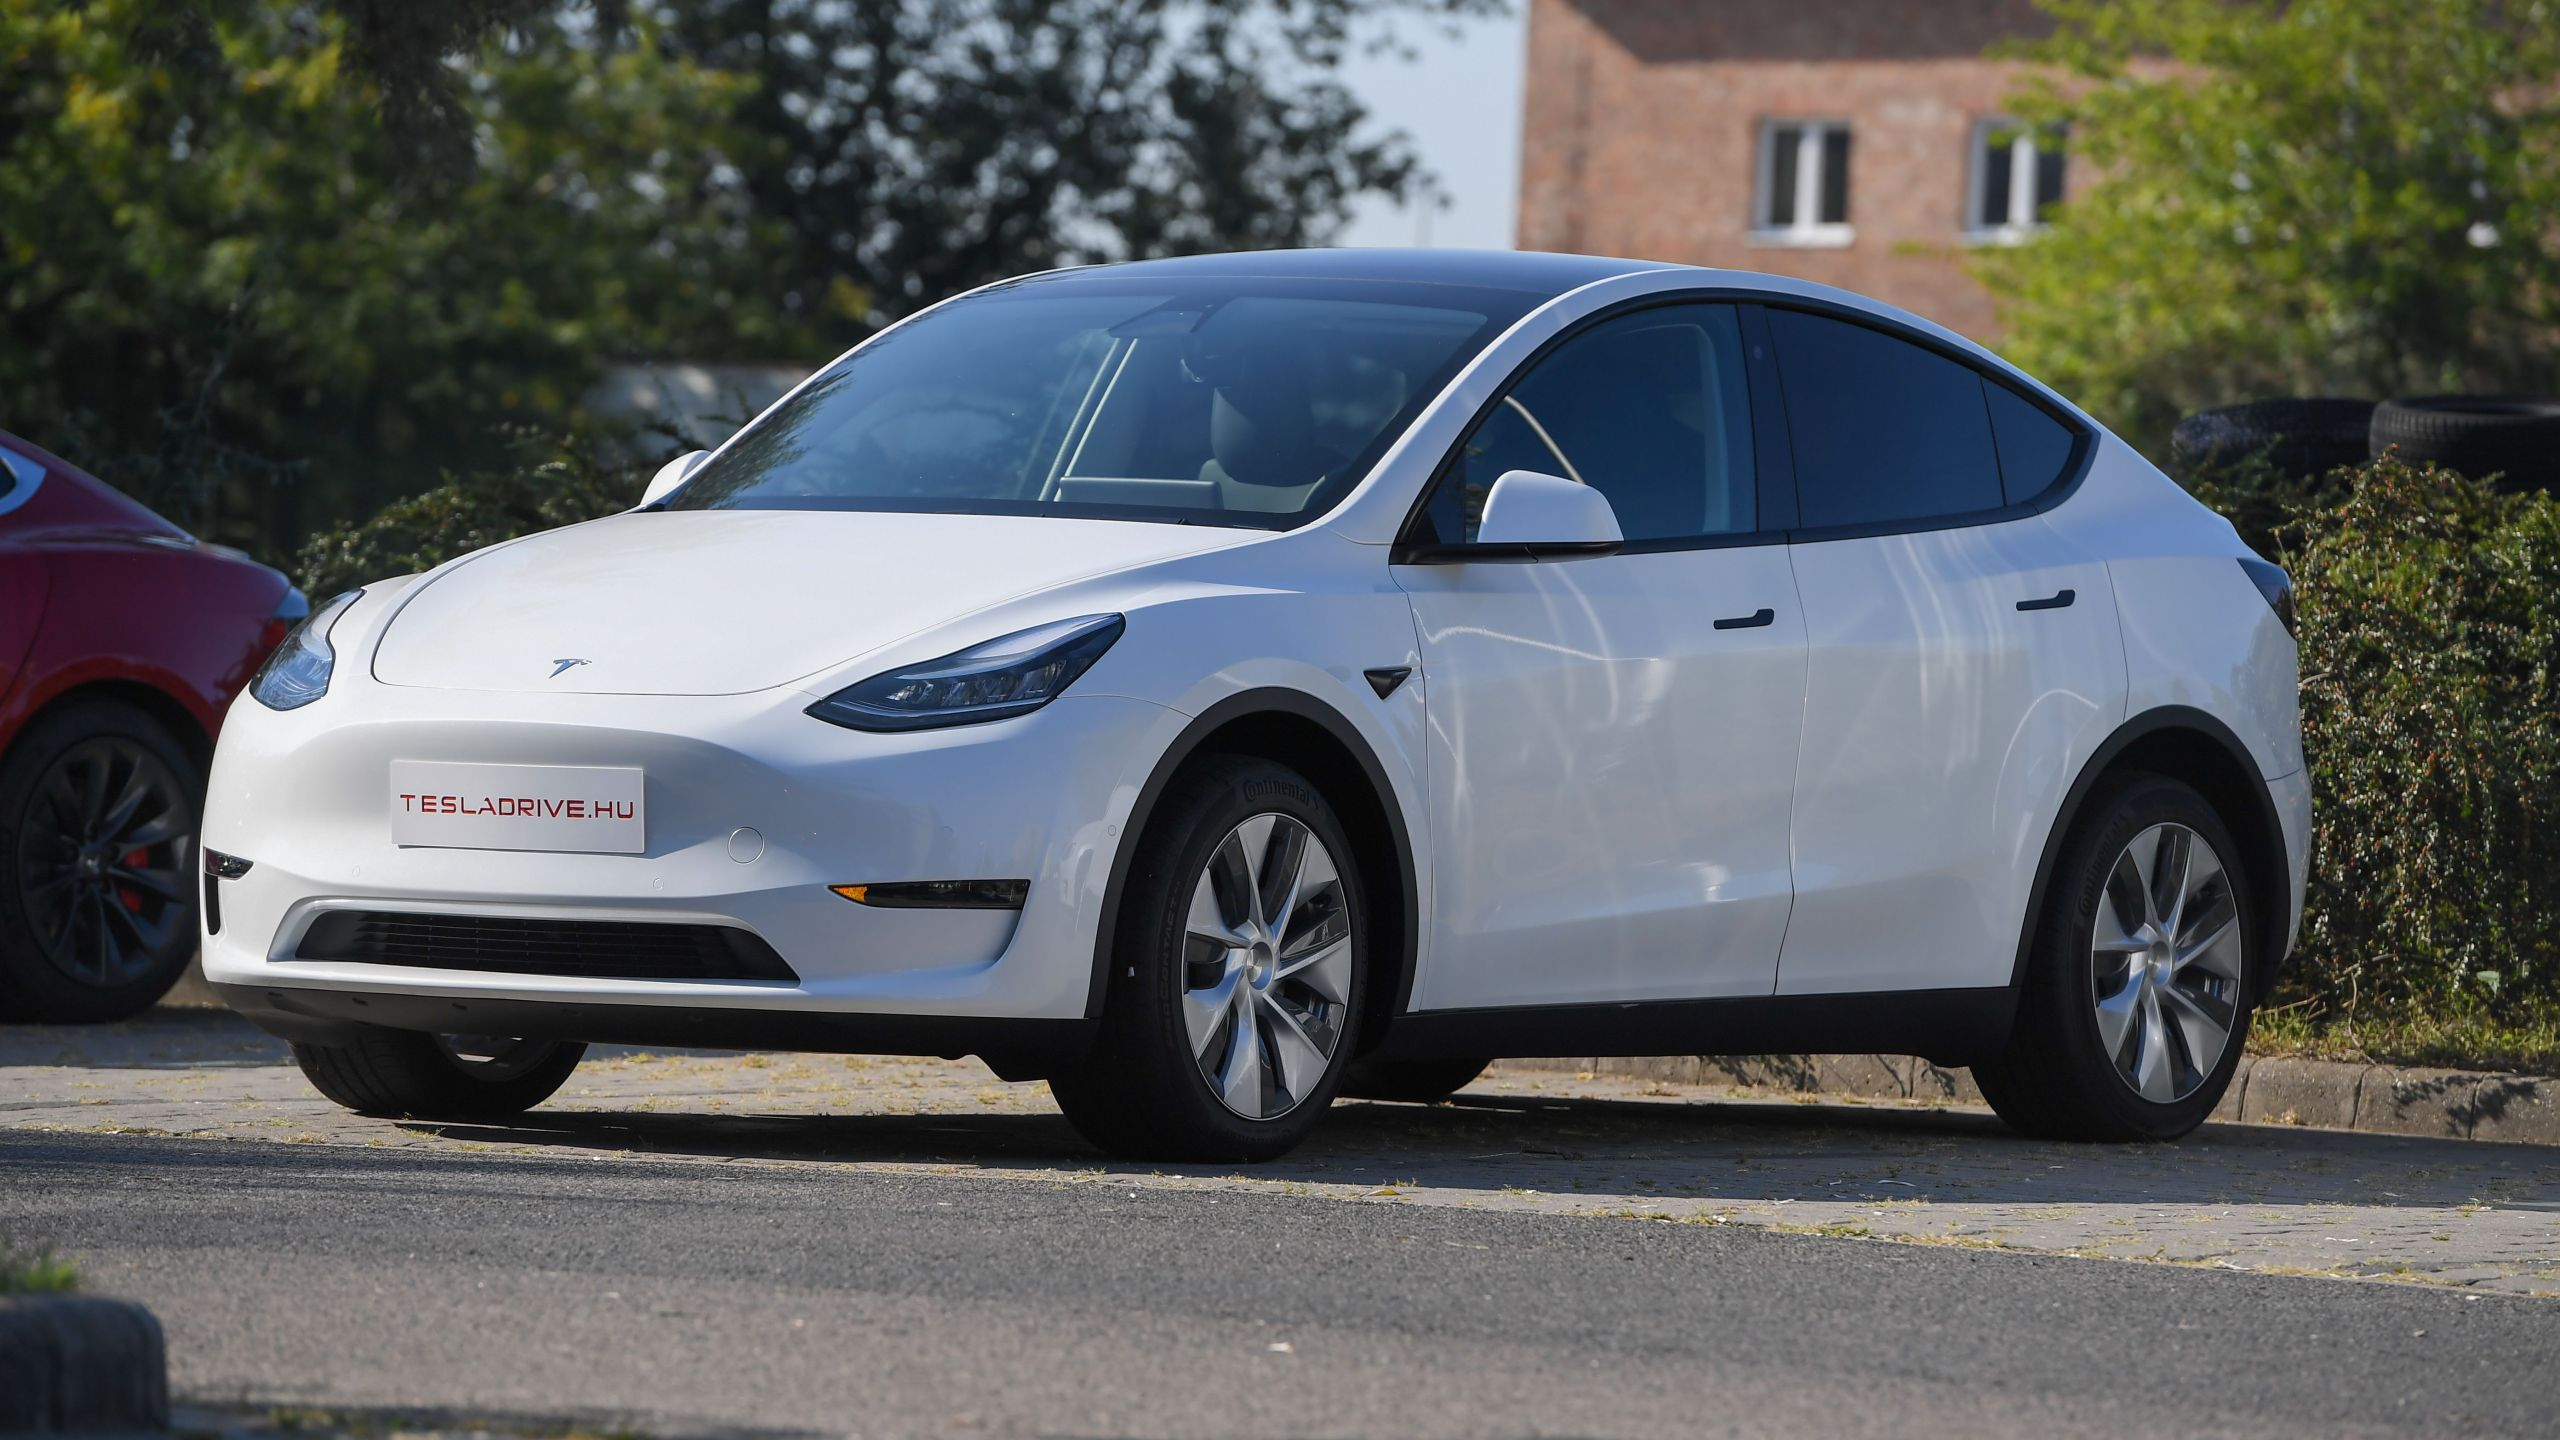 A Tesla Model Y car, an all-electric compact SUV, is seen during its presentation at the Automobile Club in Budapest on Sept. 5, 2020. (ATTILA KISBENEDEK / AFP / Getty Images)